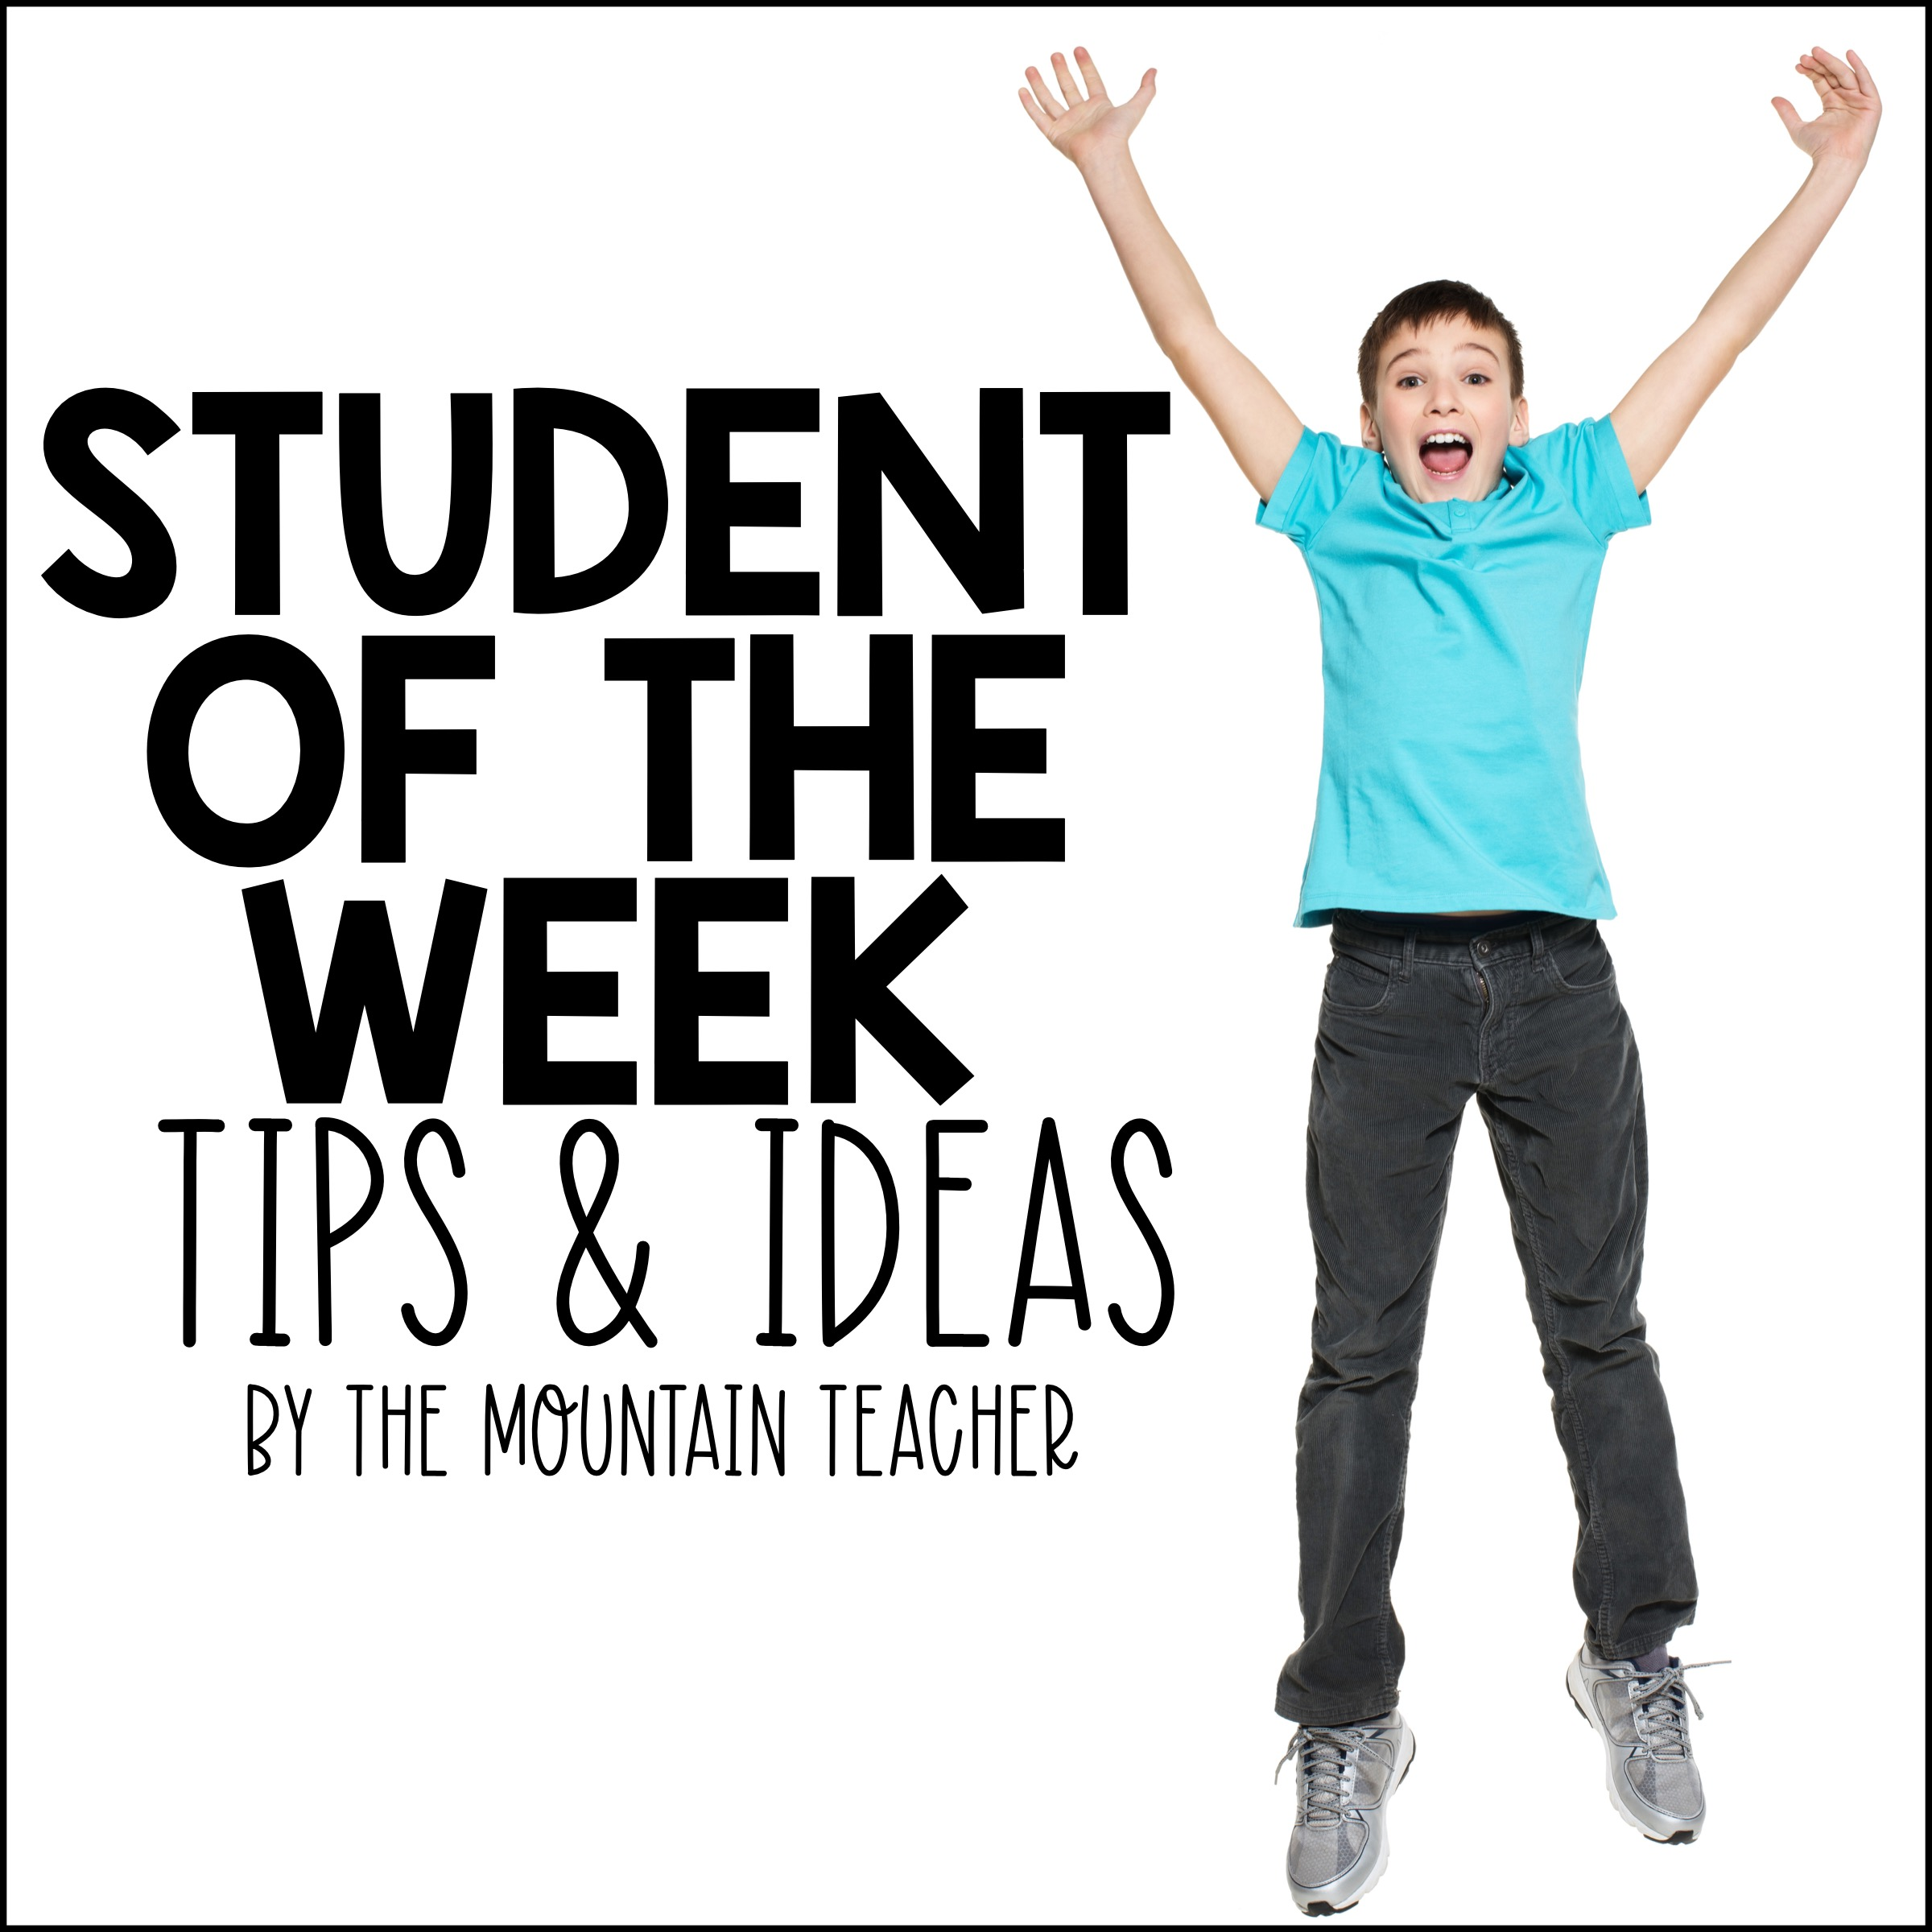 Star Student of the Week Poster and Ideas